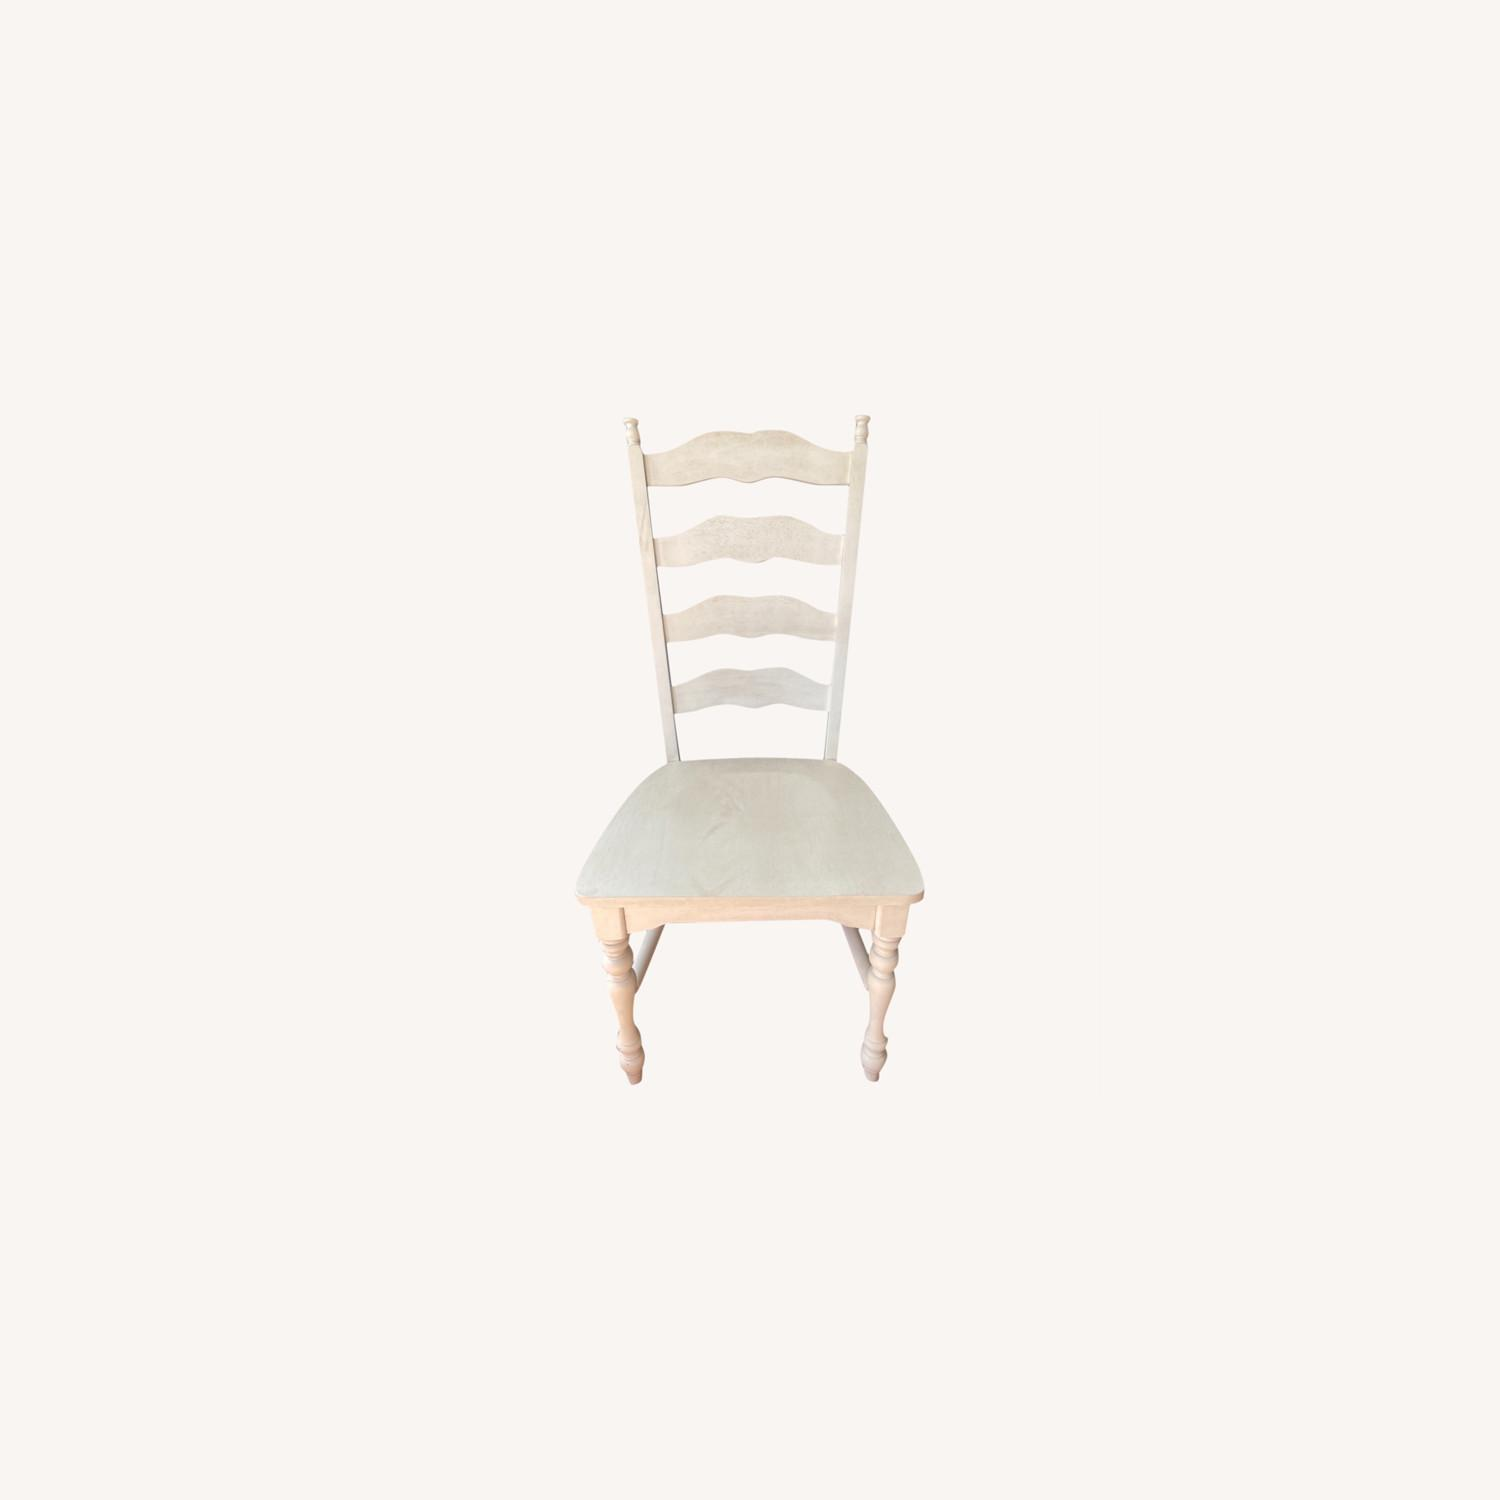 Whitewashed Ladderback Solid Wood Dining Chair - image-0